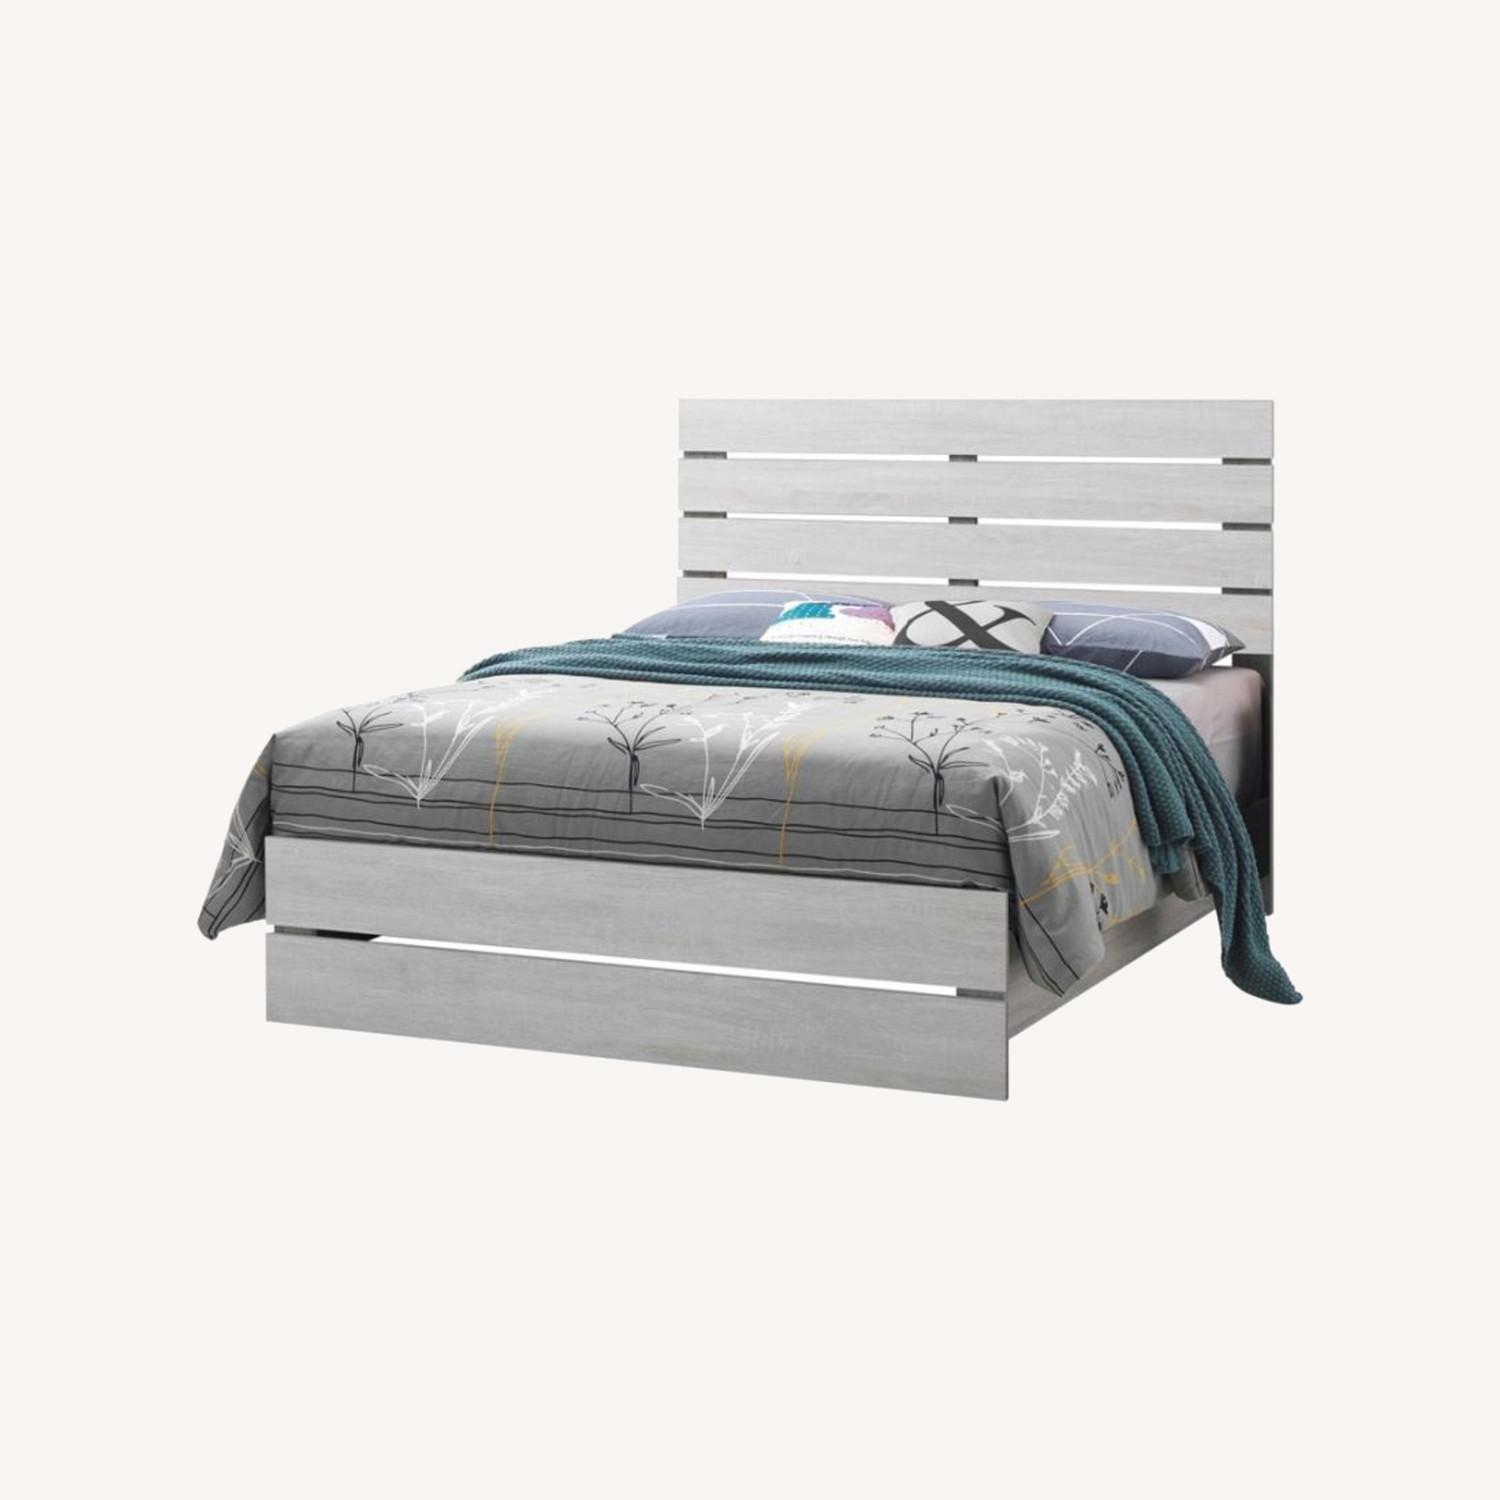 King Bed In Coastal White W/ 3D Paper Laminate - image-4